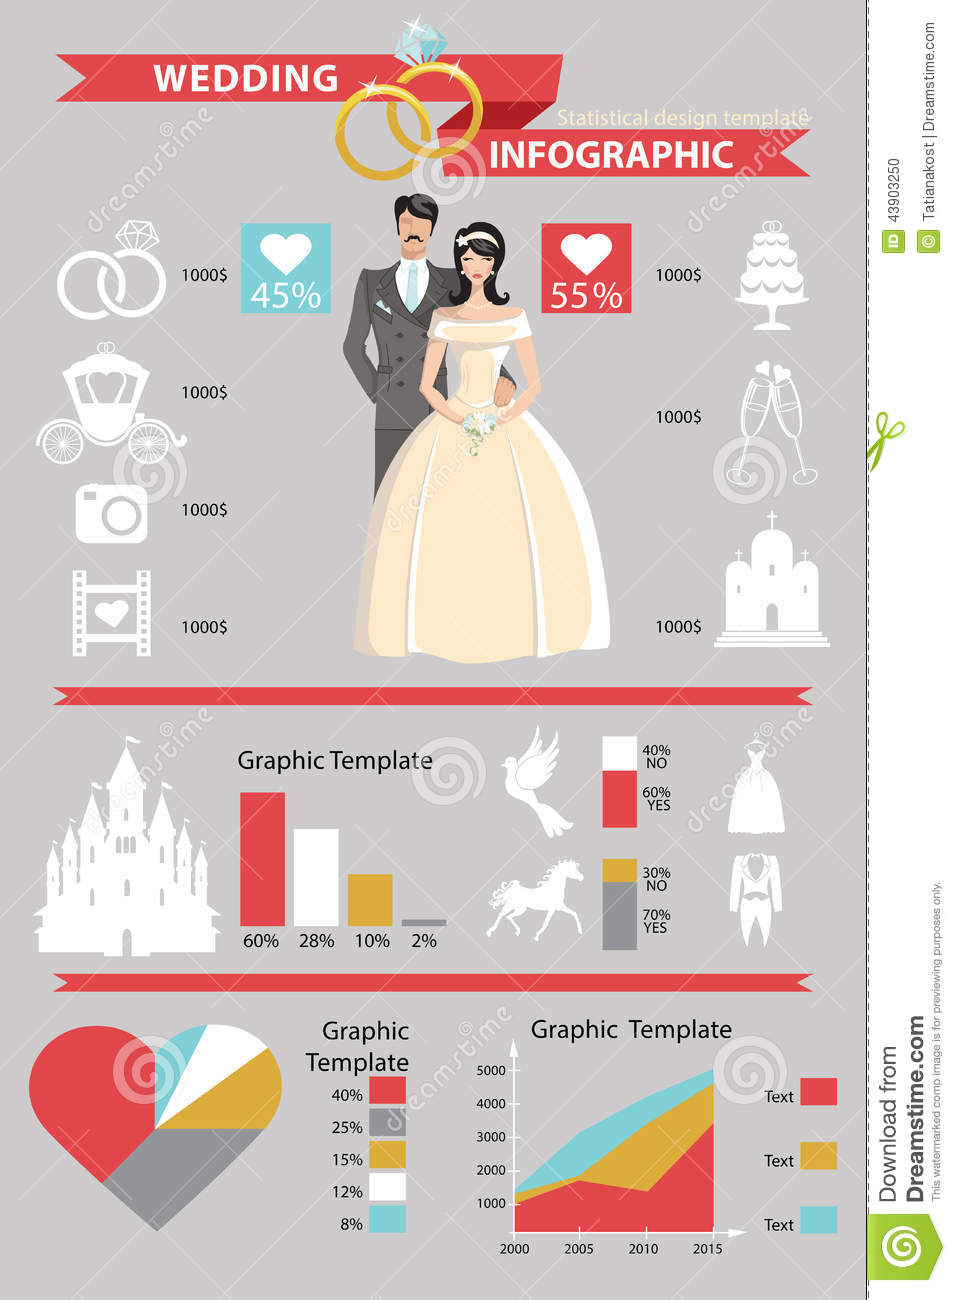 Wedding Infographic SetCute Cartoon Bride And Groom With Icons In Retro Style Statistical Design Template Vector